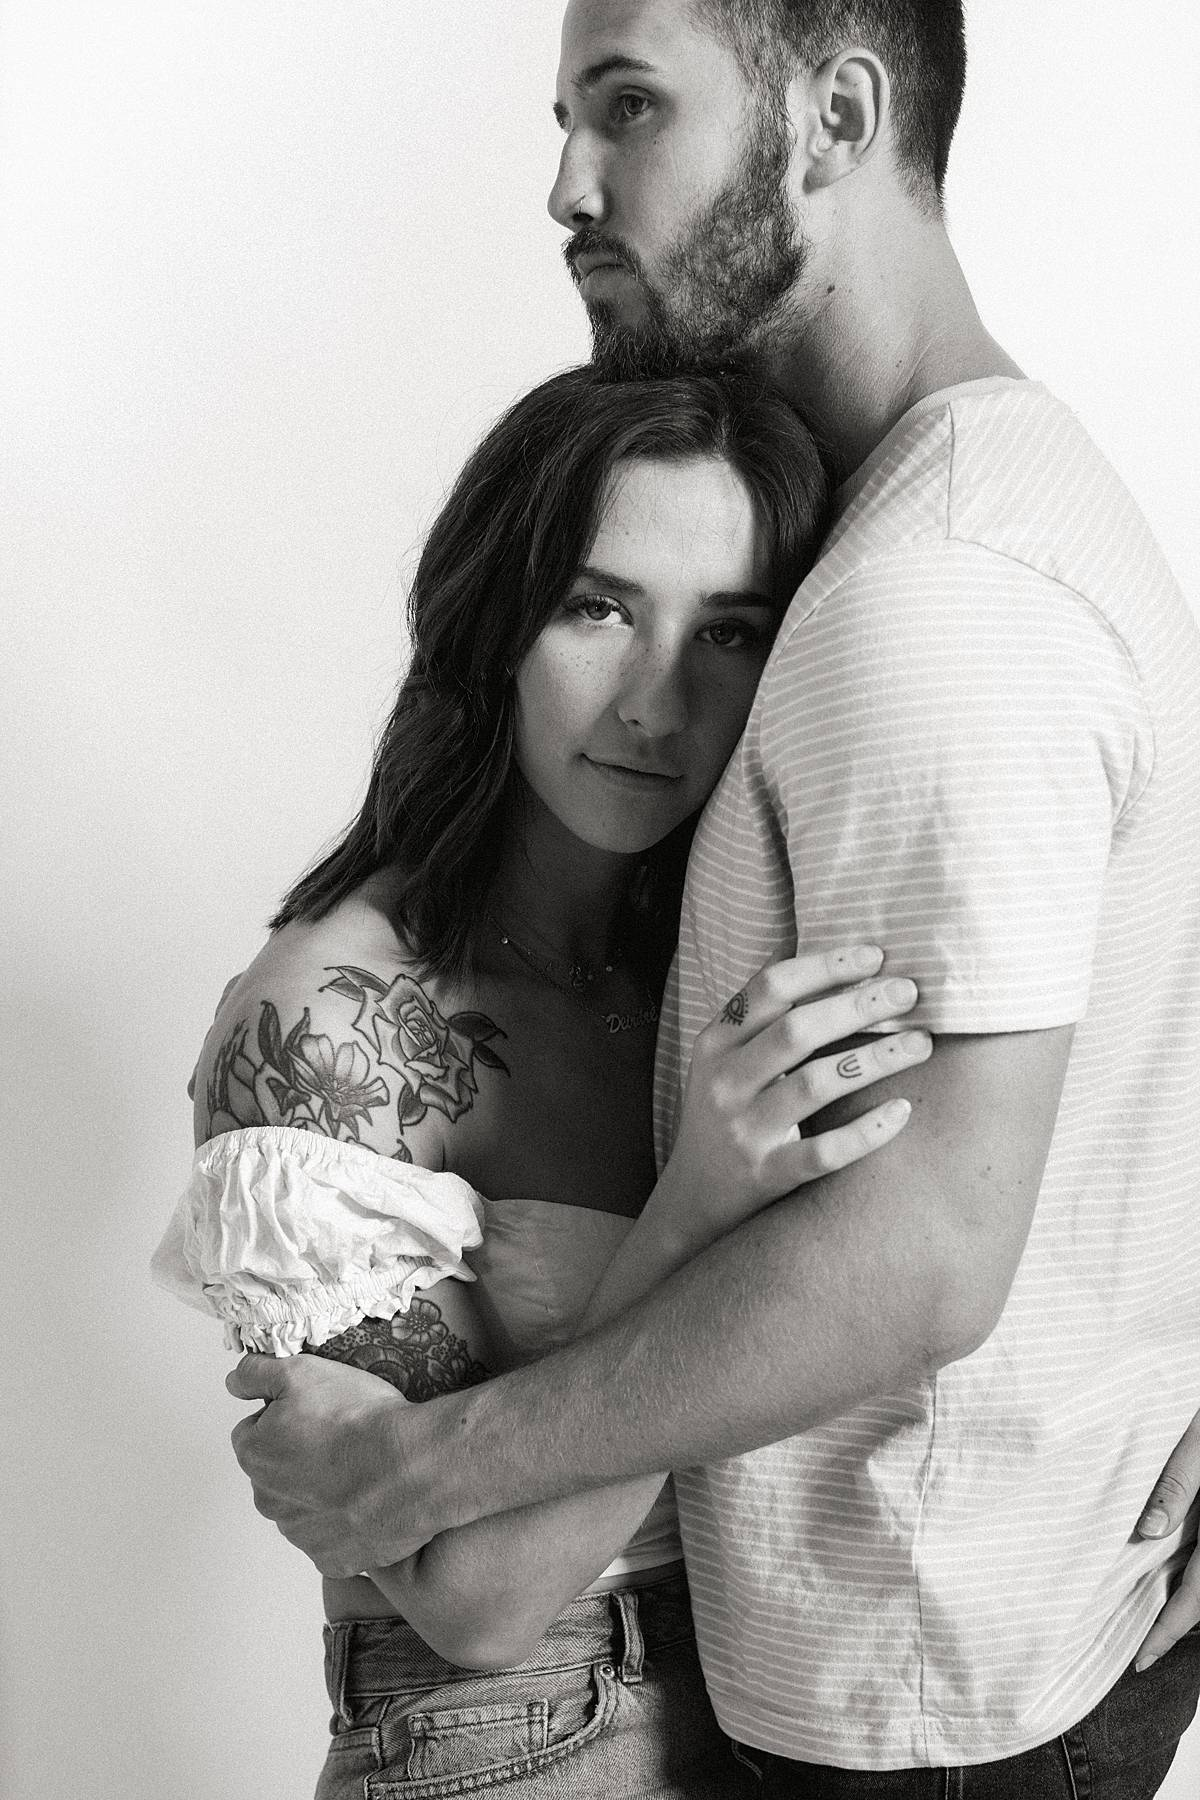 charleston studio photography couples portraits natural light sony a7iii